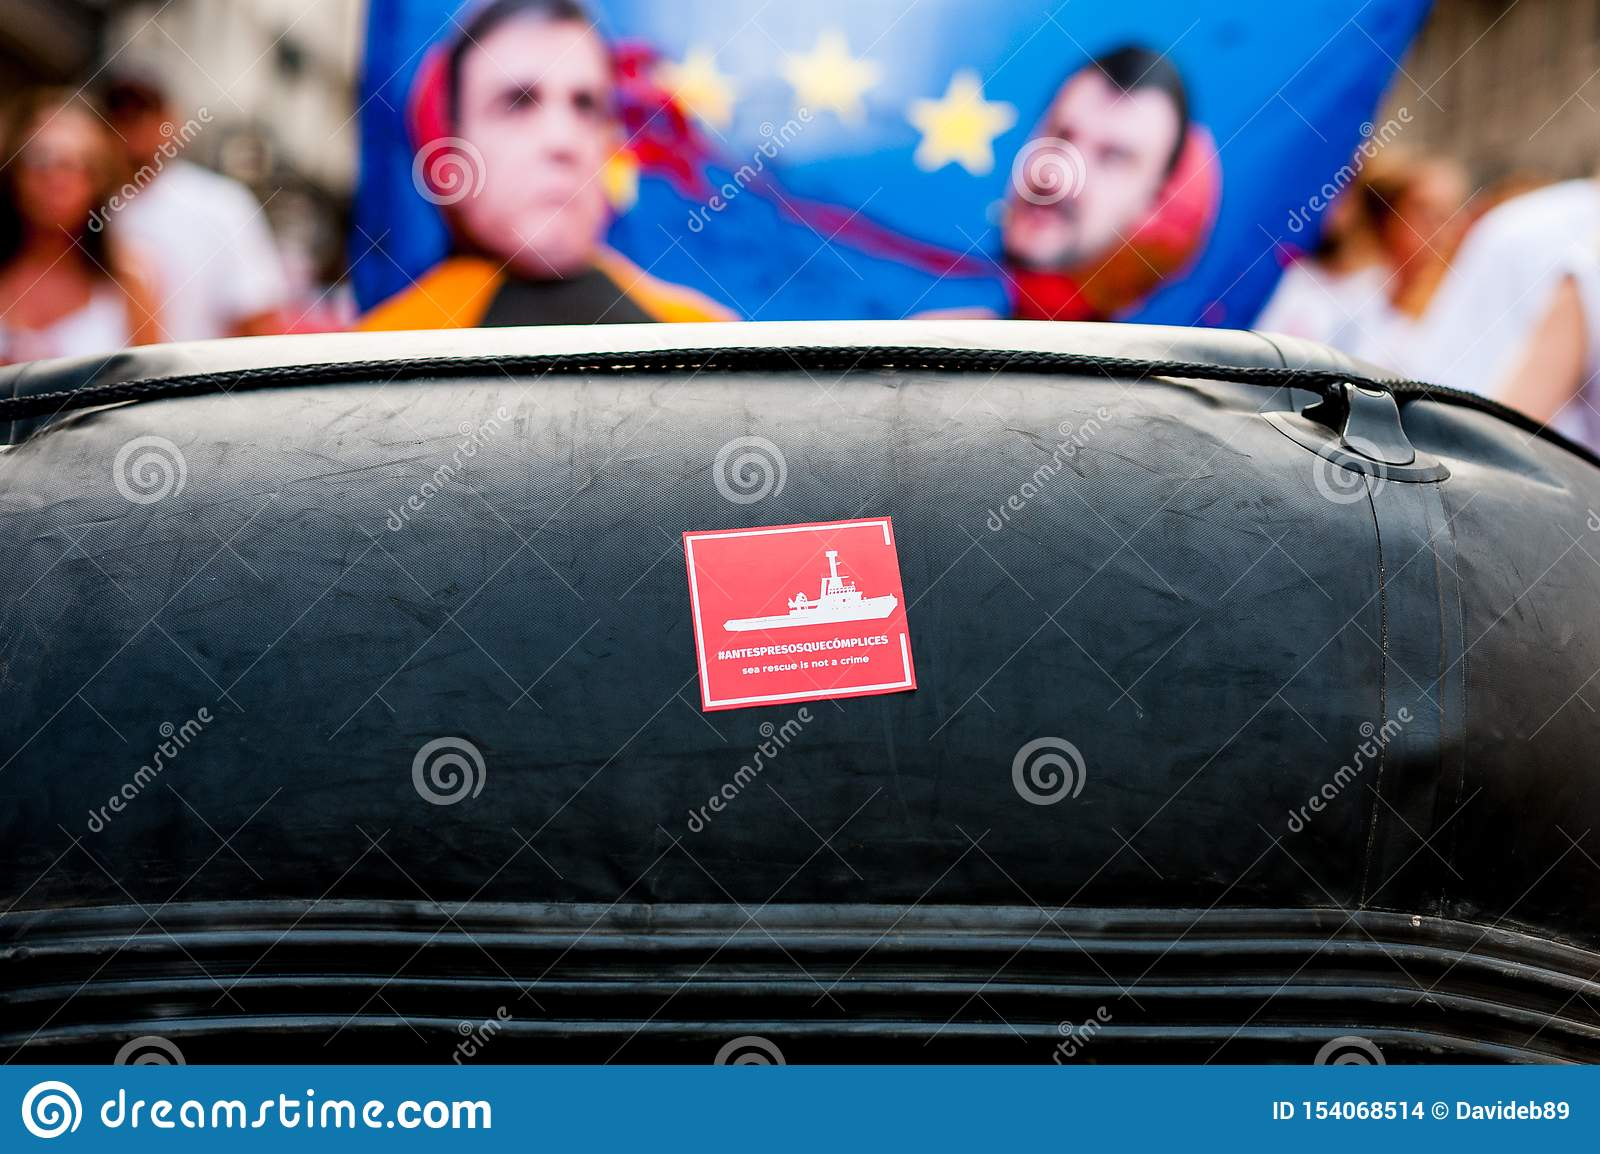 Proactiva open arms ngo sticker on rubber dinghy boat during public protest against italian far right politics and politicians